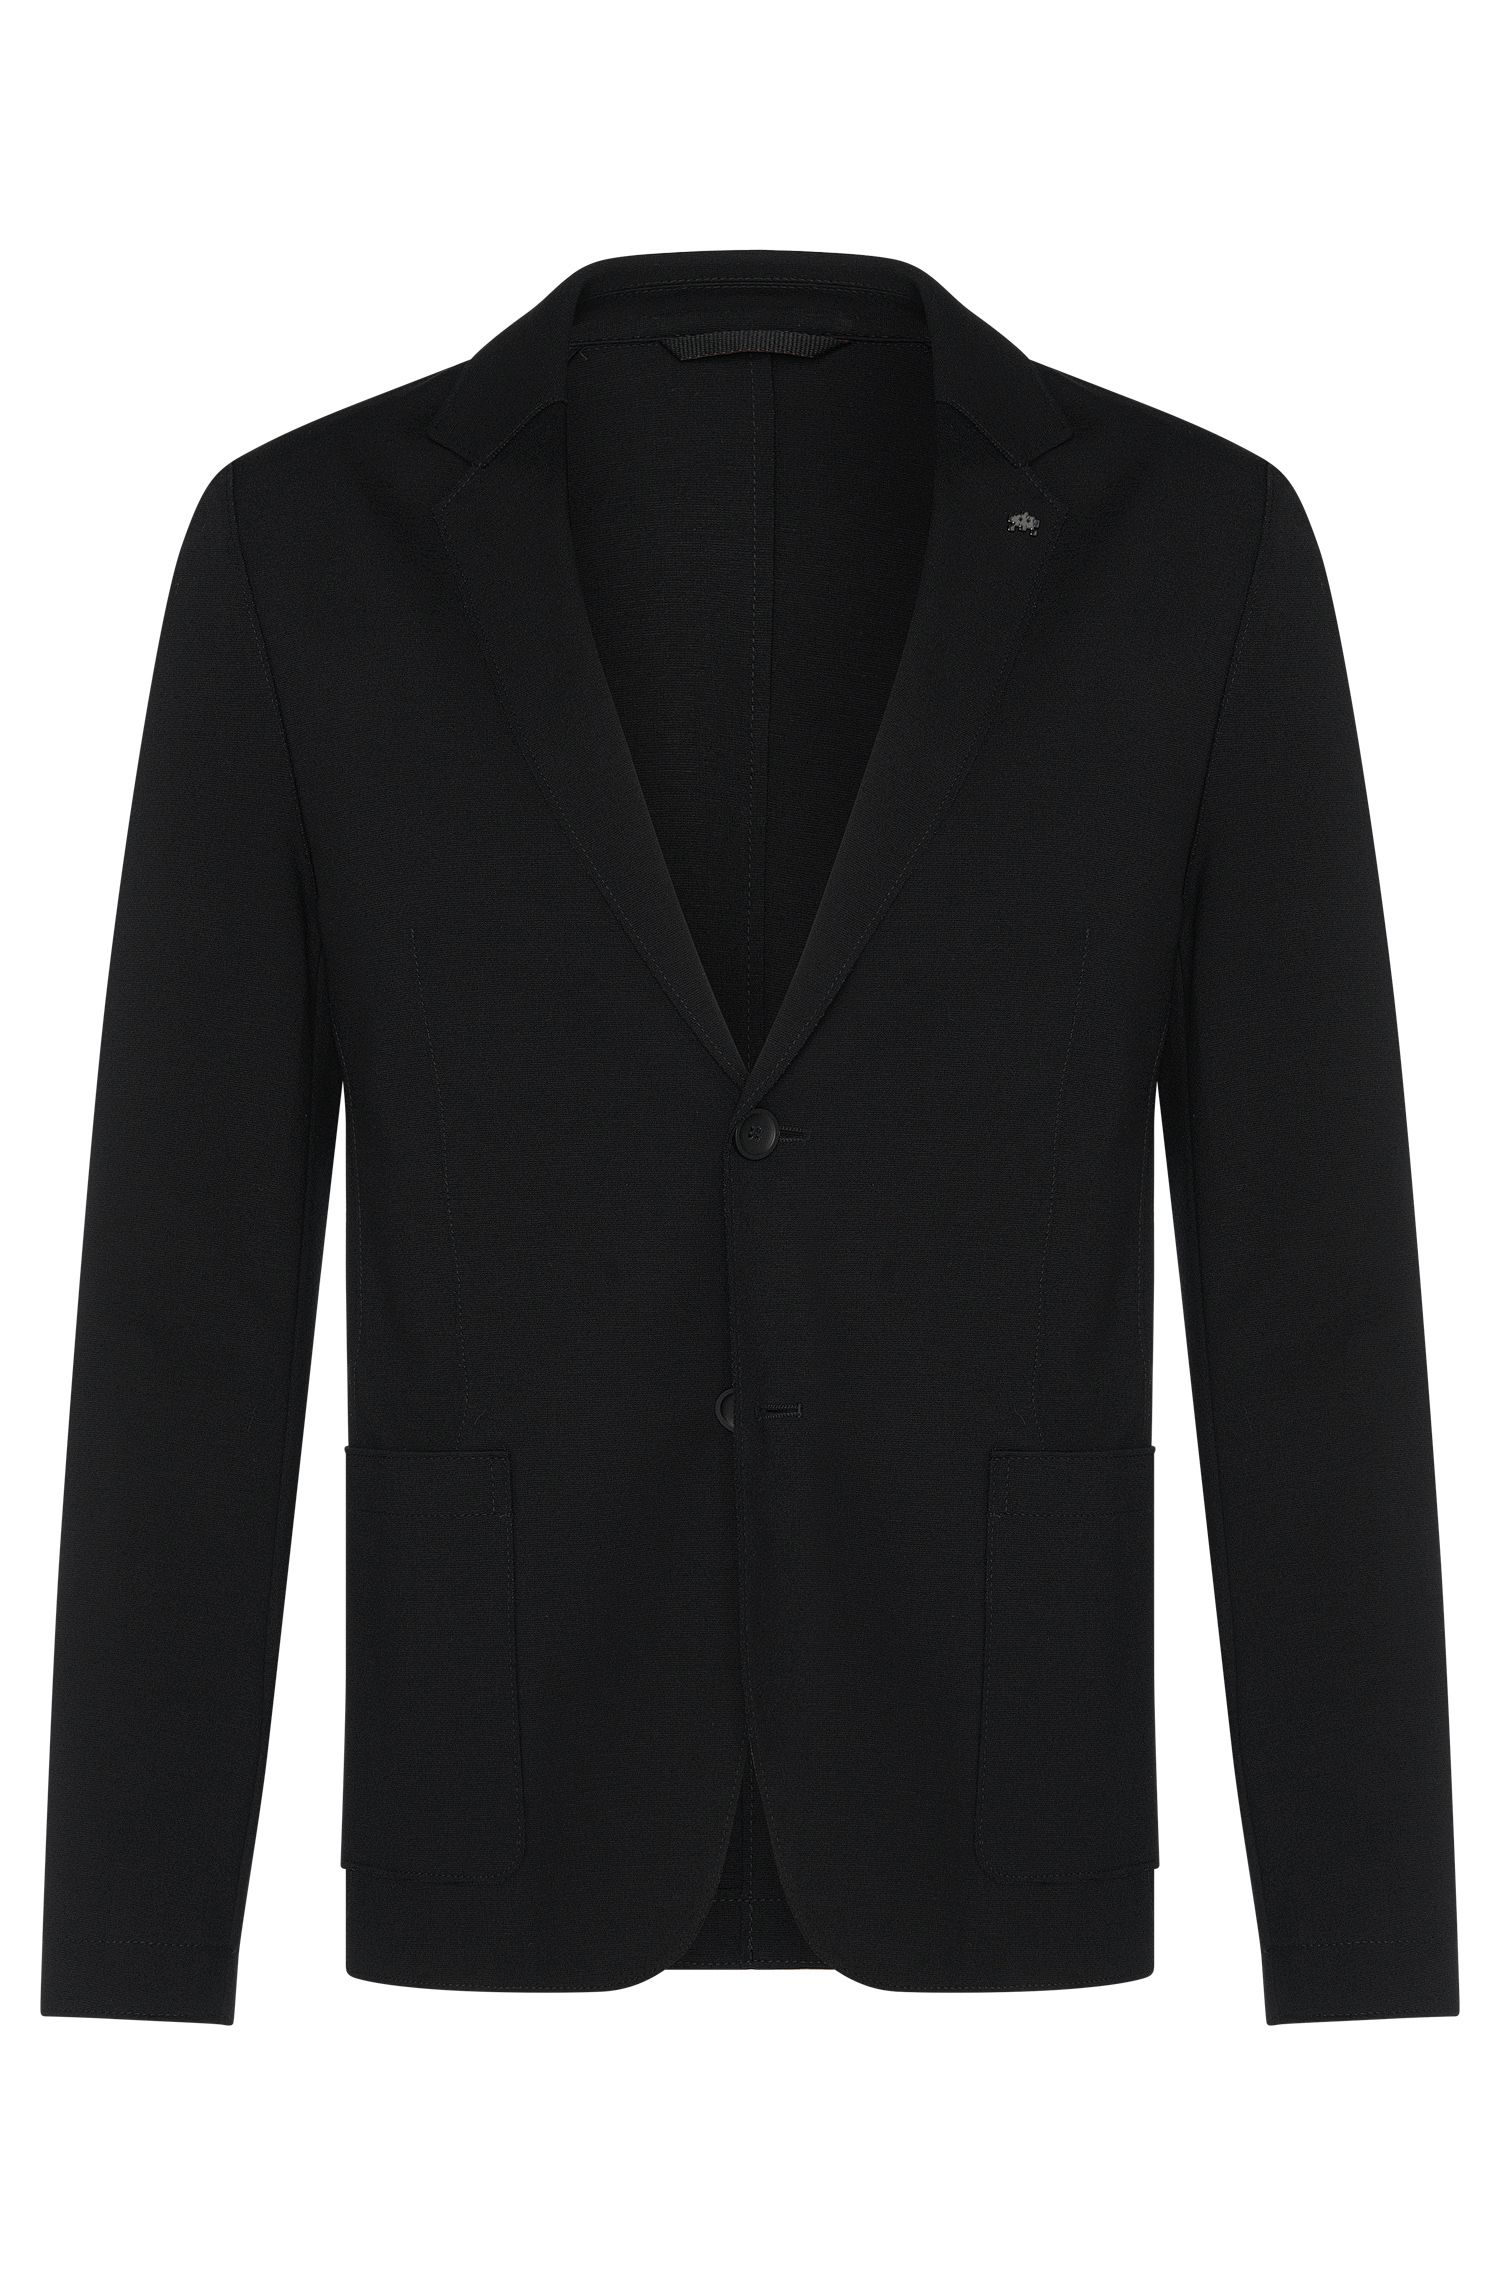 'Agalto' | Slim Fit, Stretch Jersey Sport Coat